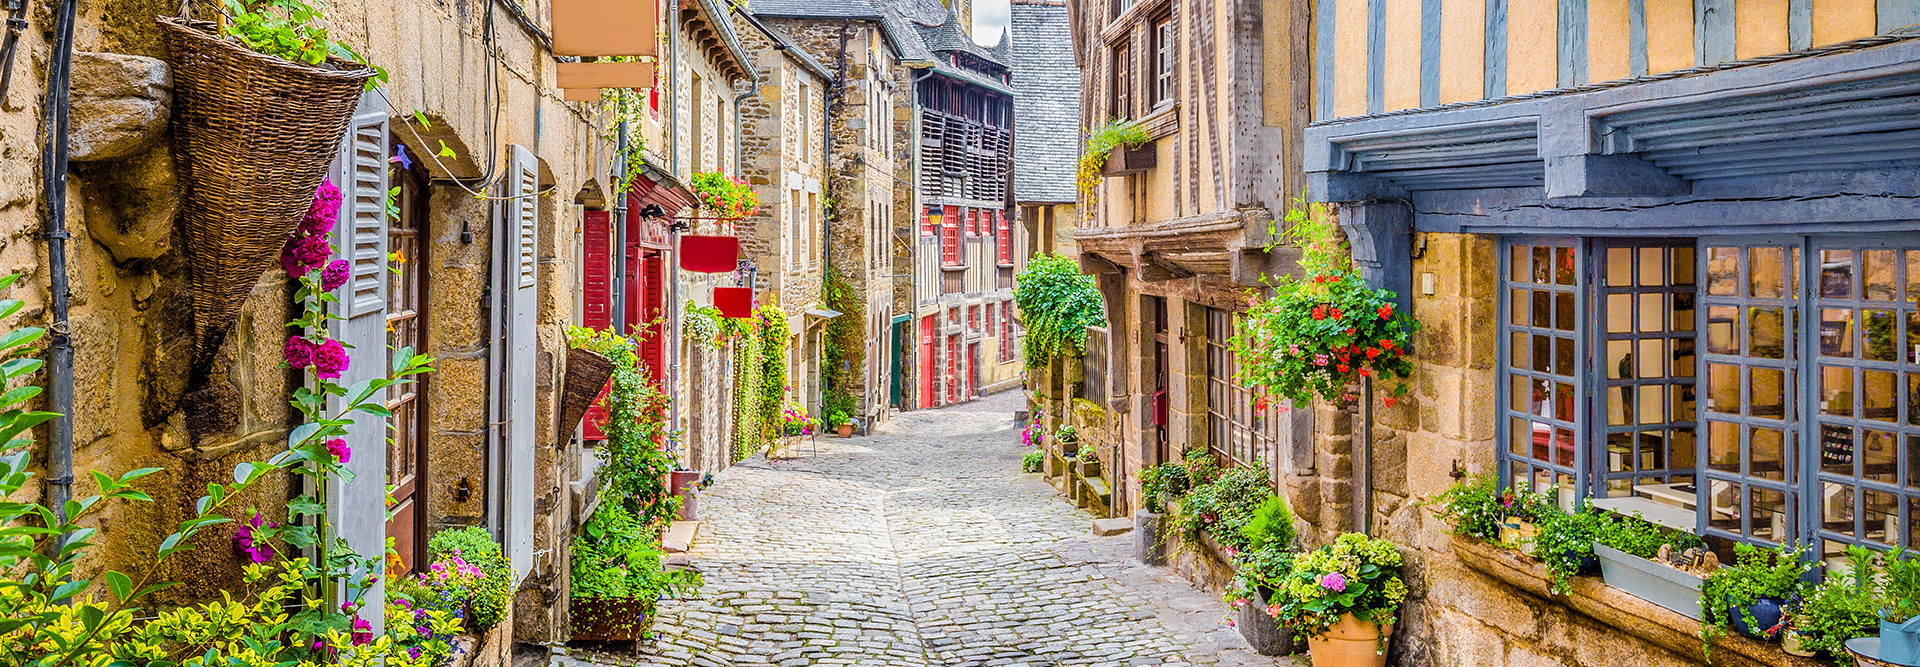 Cobblestone Street in France, Europe